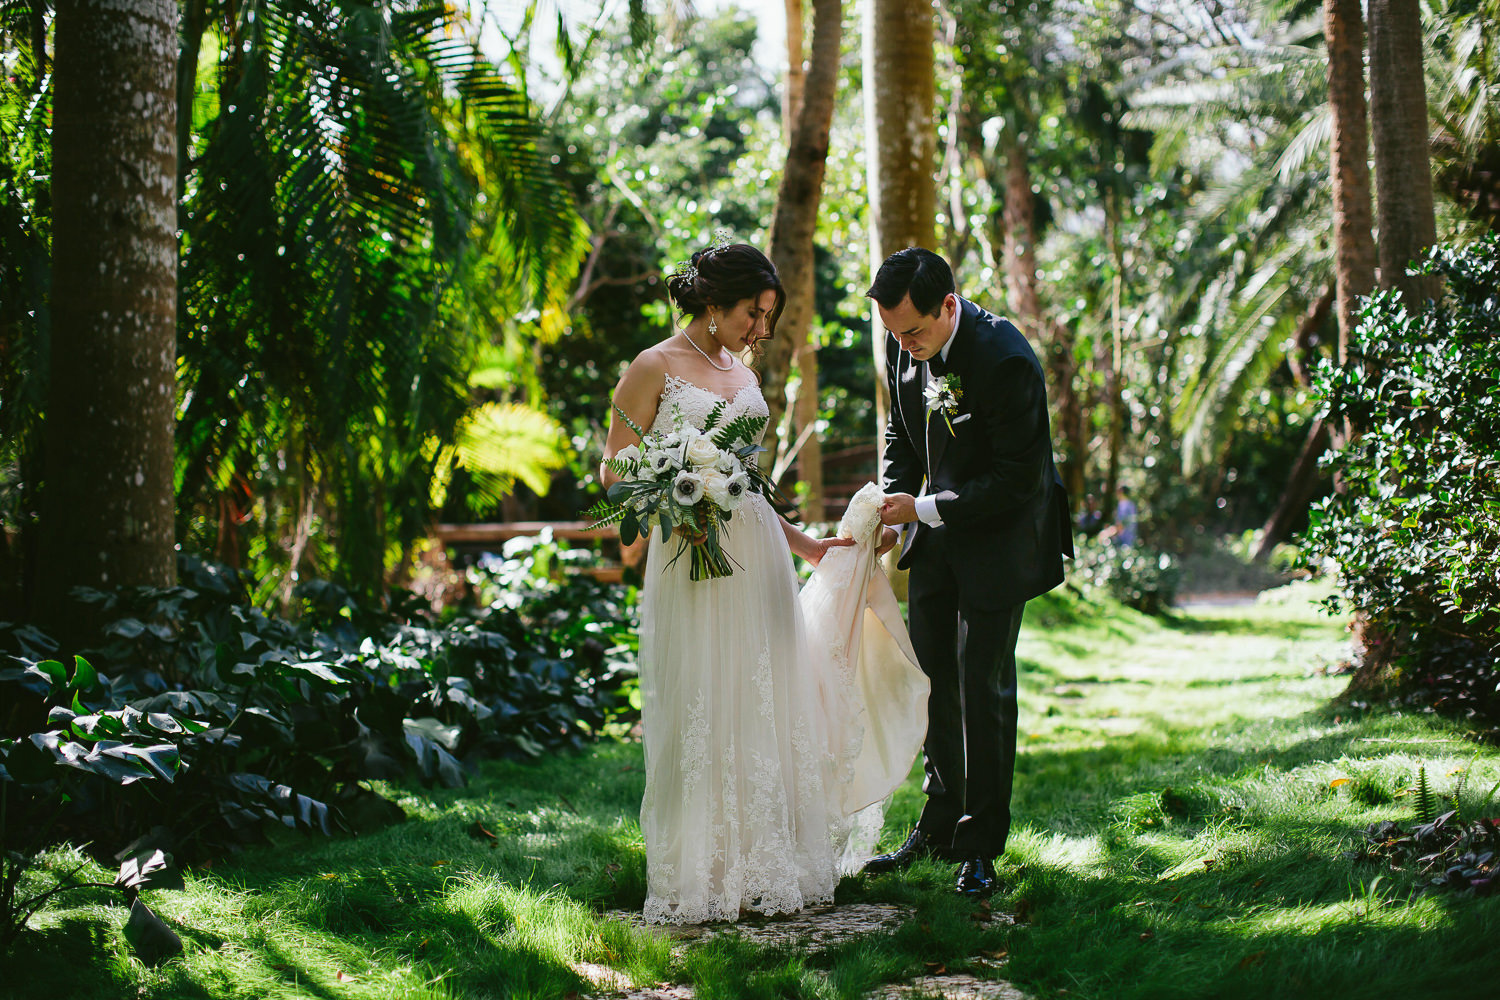 gorgeous bride and groom in a forest before their wedding photography by tiny house photo florida weddings